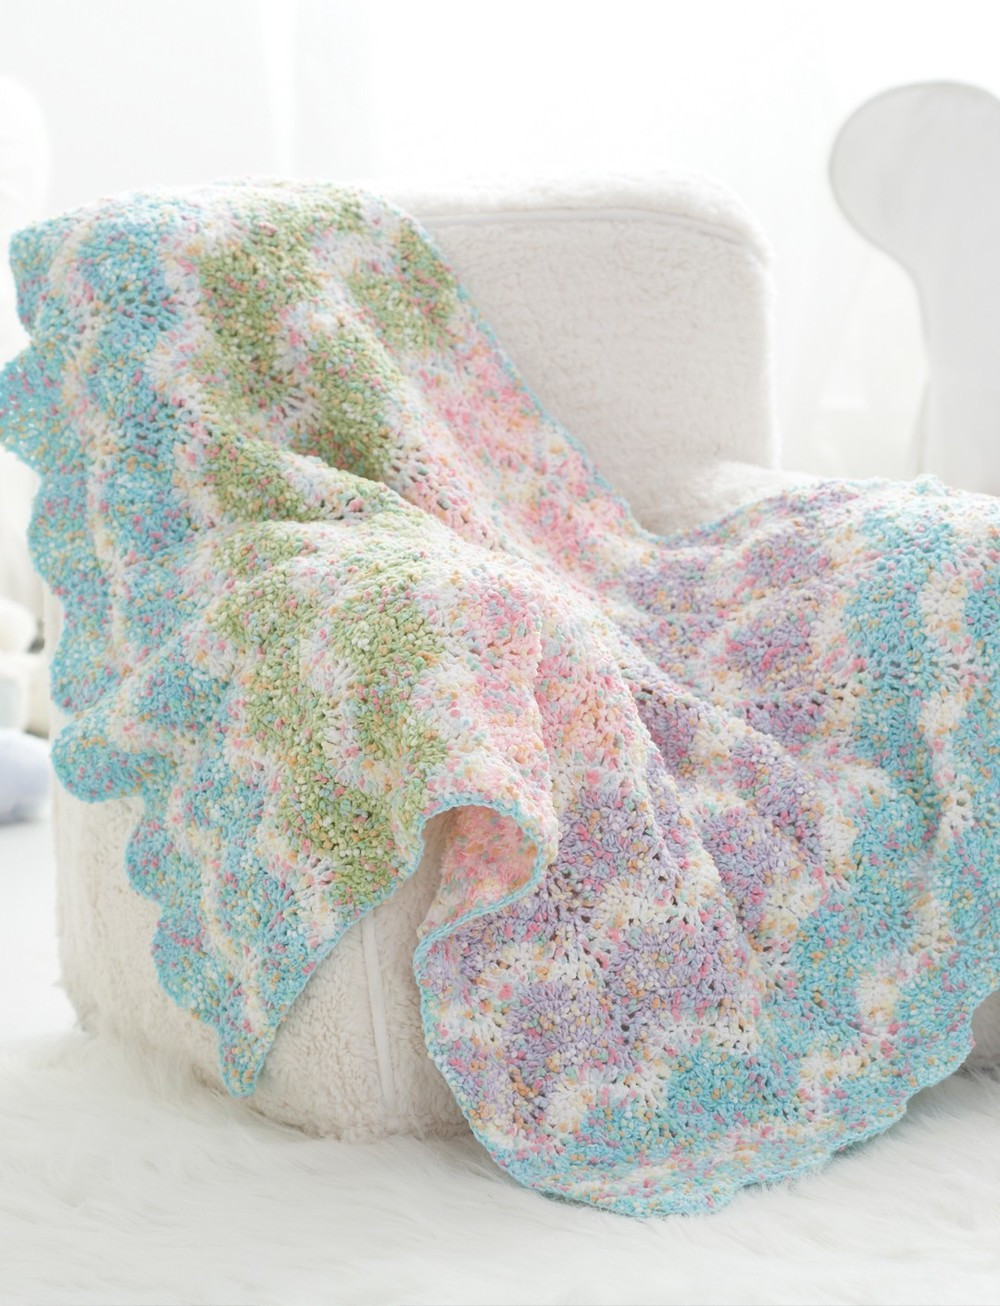 Crochet Baby Blanket Patterns New Sweet Pastel Waves Crochet Baby Blanket Pattern Of Fresh 44 Models Crochet Baby Blanket Patterns